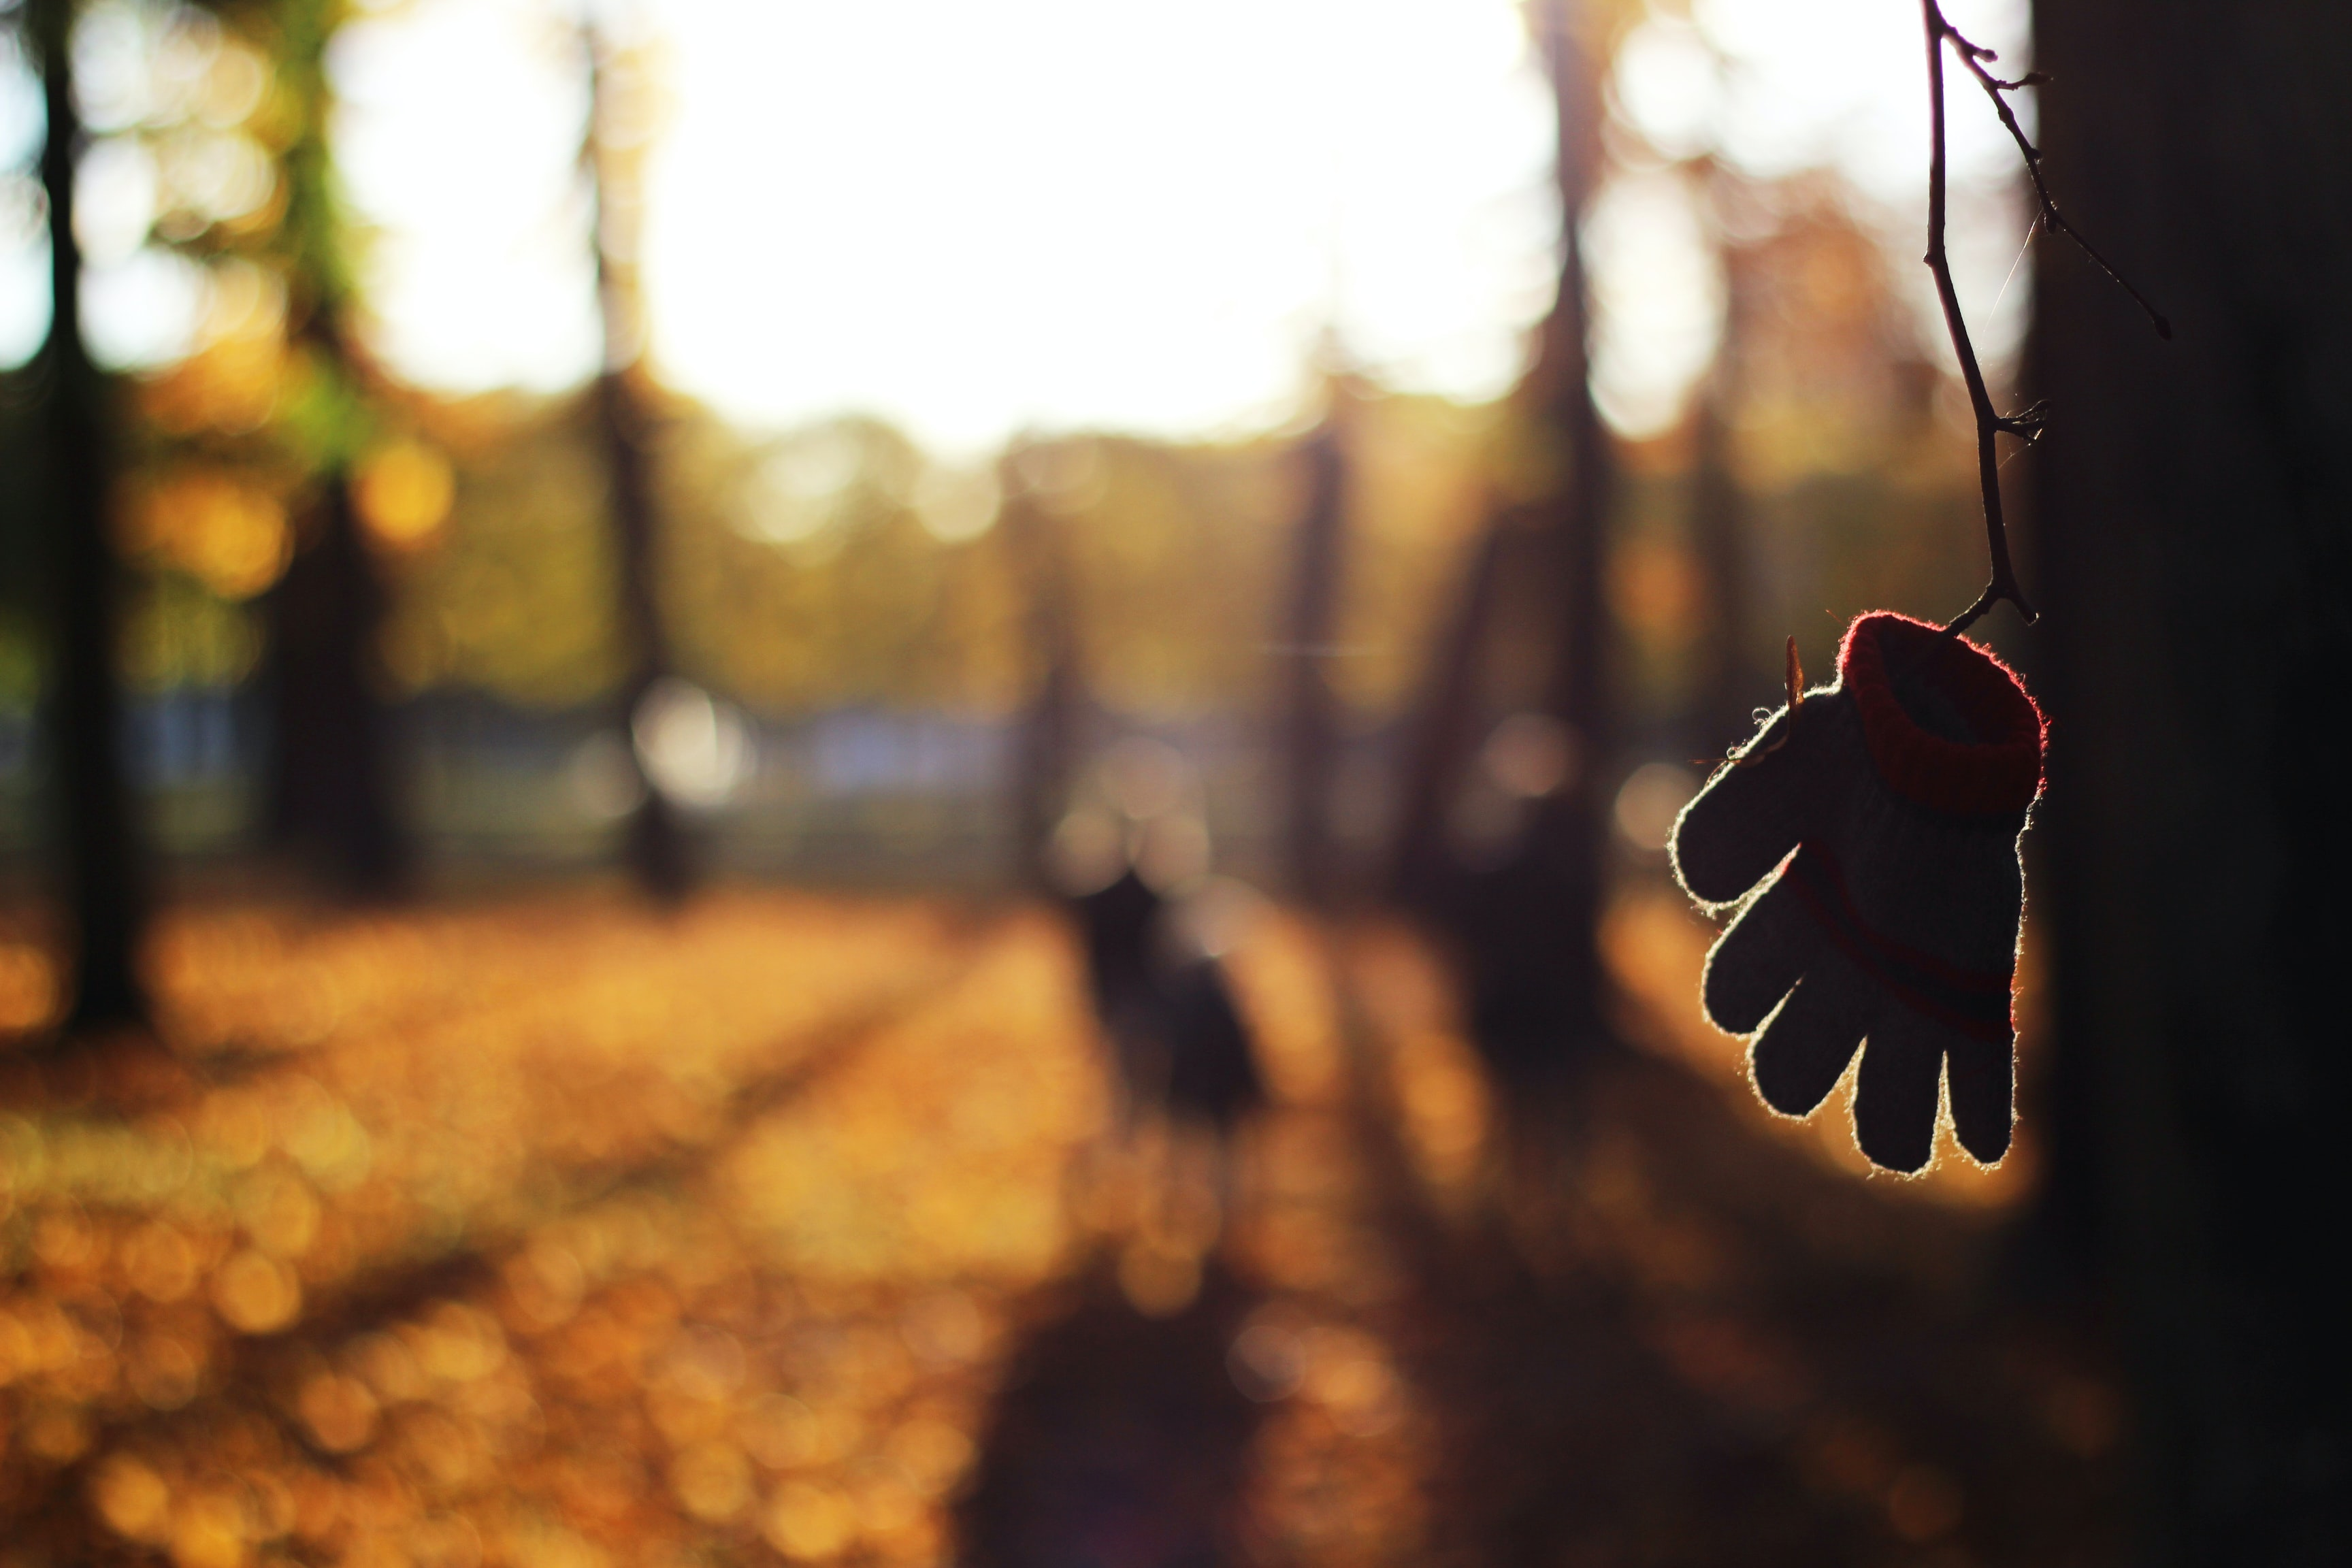 A child's glove hooked to a branch on a tree, with the blurry view of a bright orange light and shadow